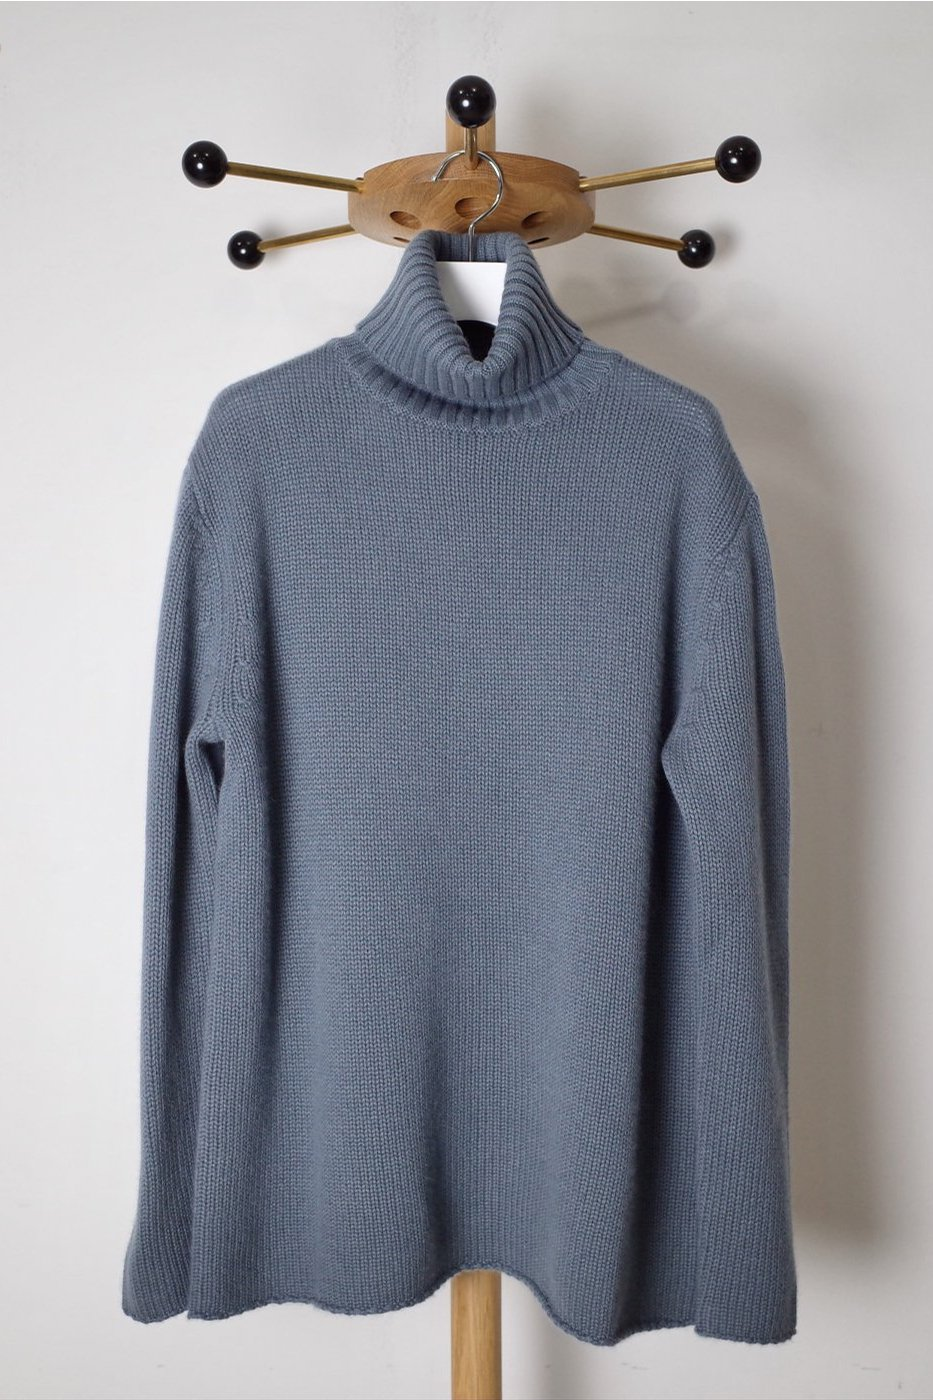 PICEA(ピセア) -BABY CASHMERE HIGH NECK-GREEN-MEN'S/WOMEN'S